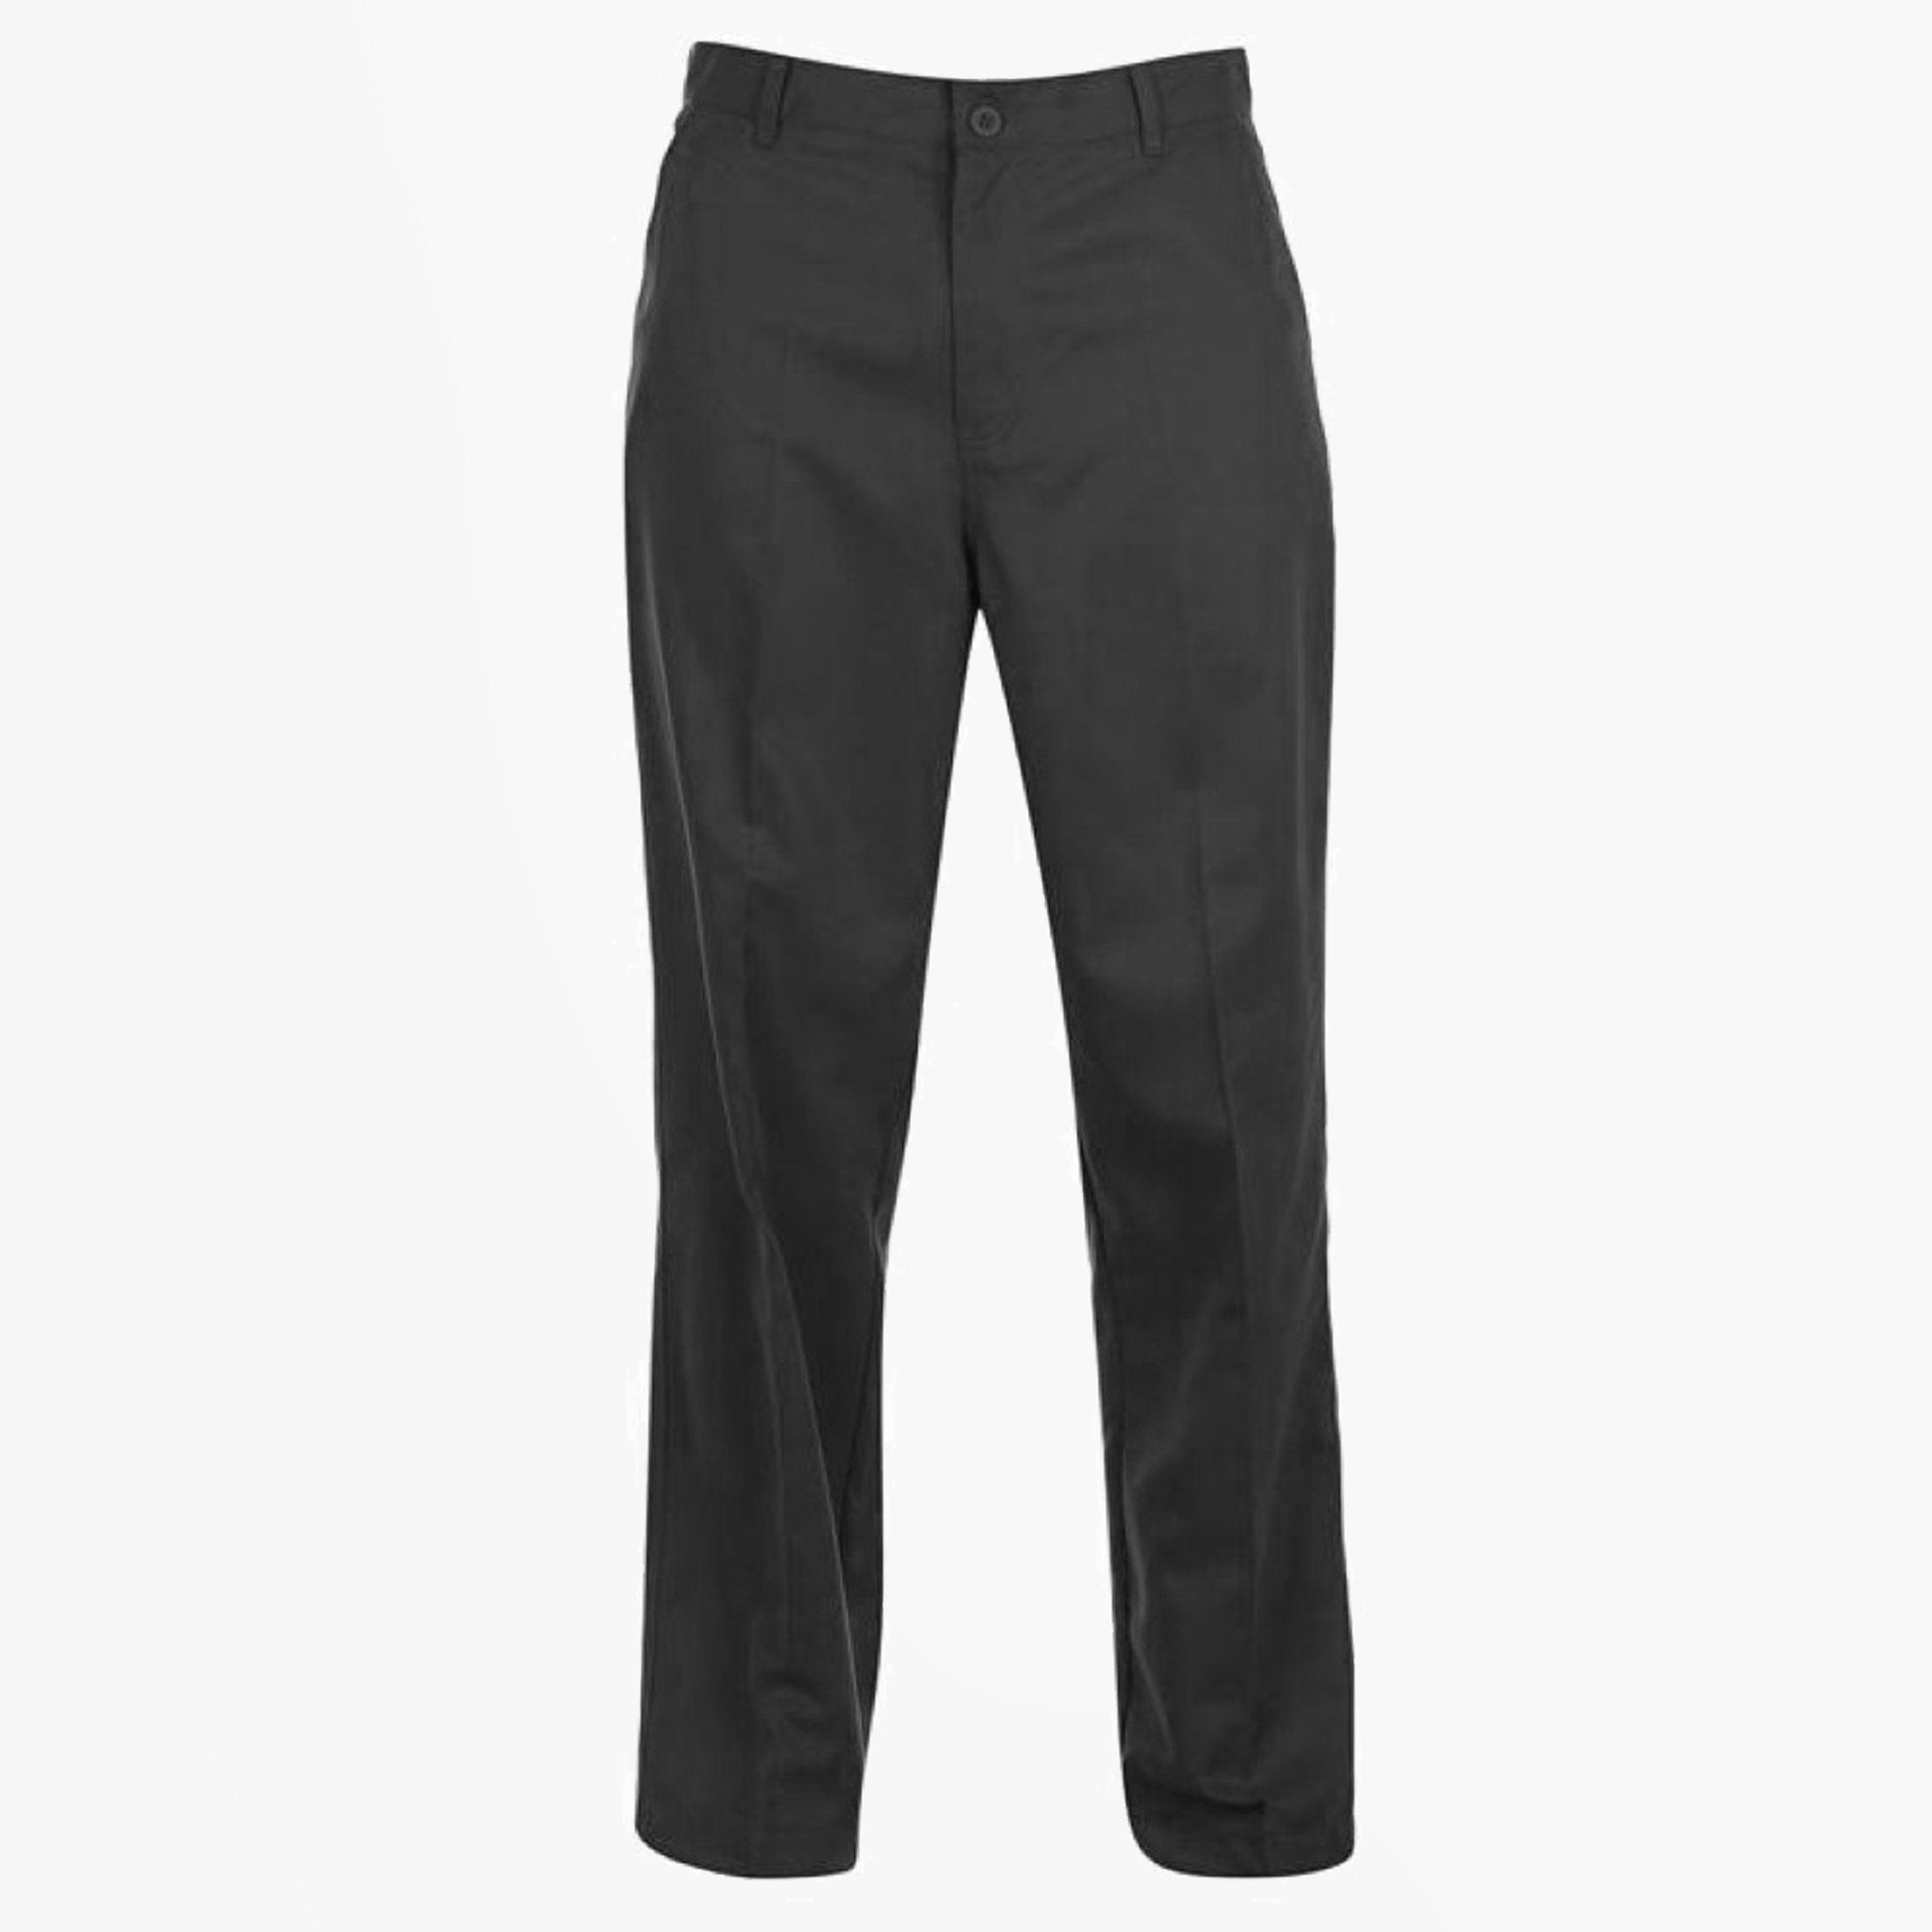 Druids Golf - Mens Winter Trousers (Black)